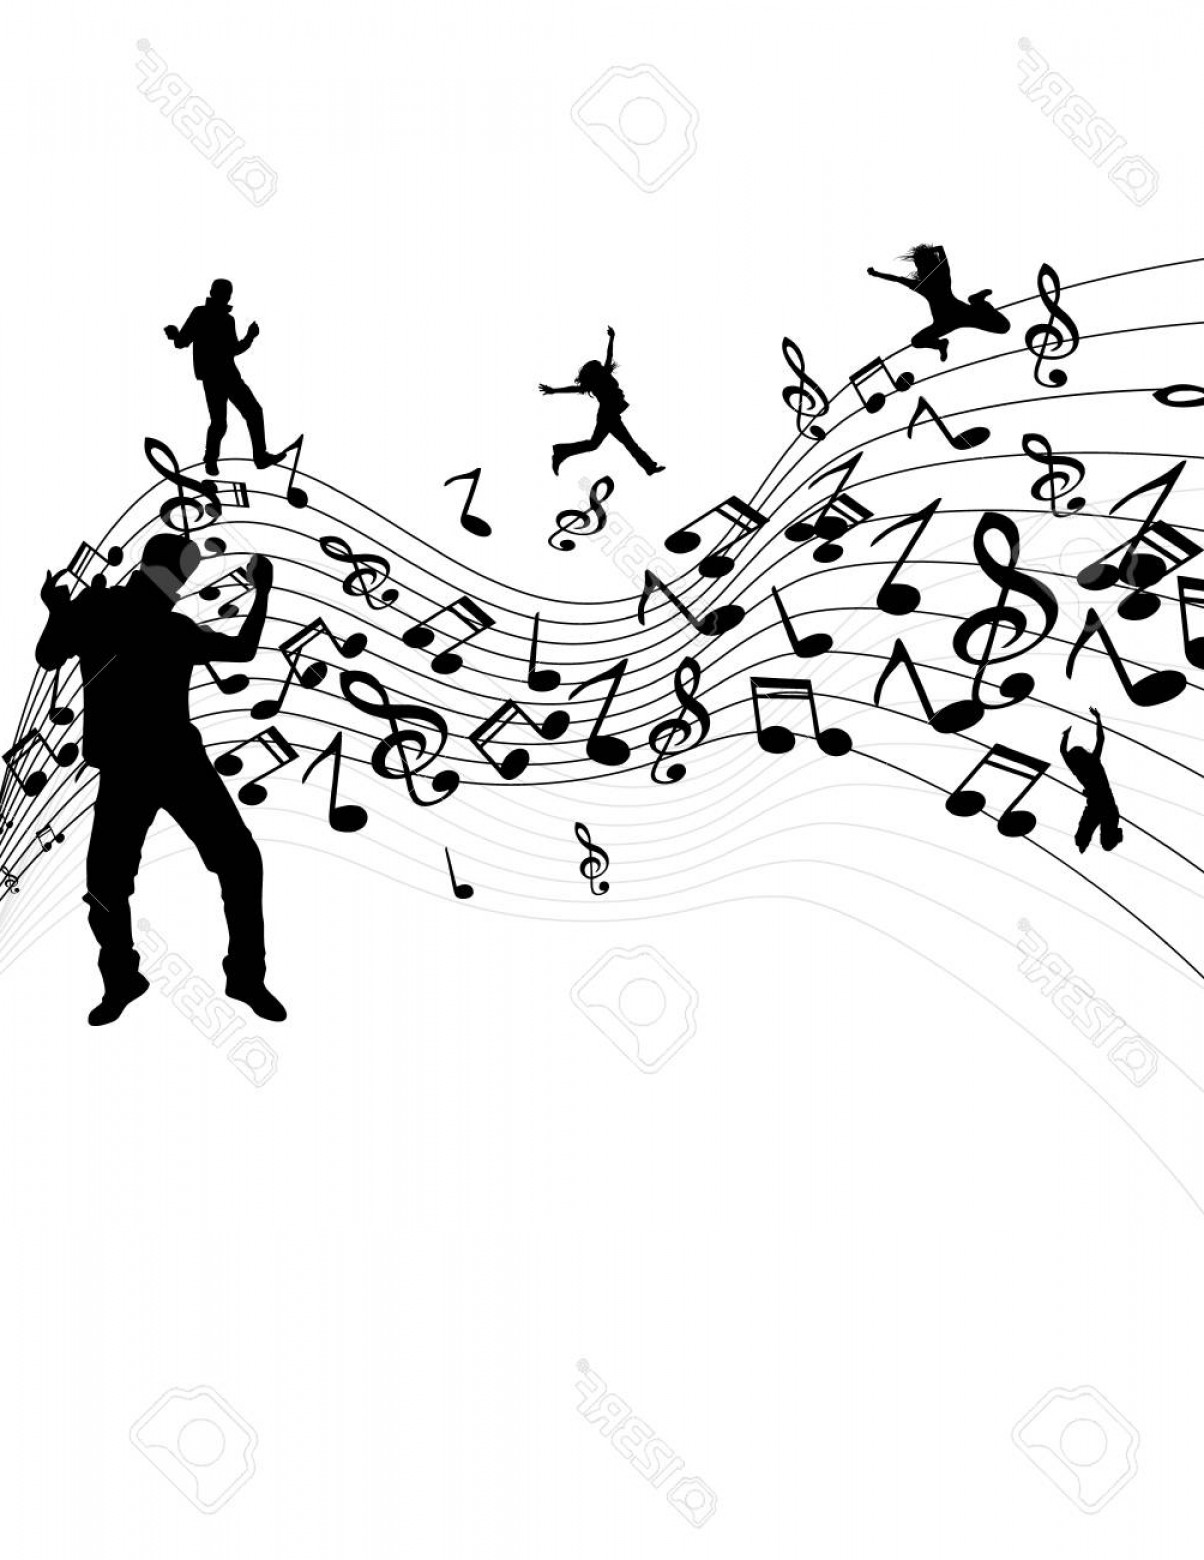 Dancing Musical Notes Vector: Photostock Vector Easy To Edit Vector Illustration Of Wavy Musical Notes With Dancer